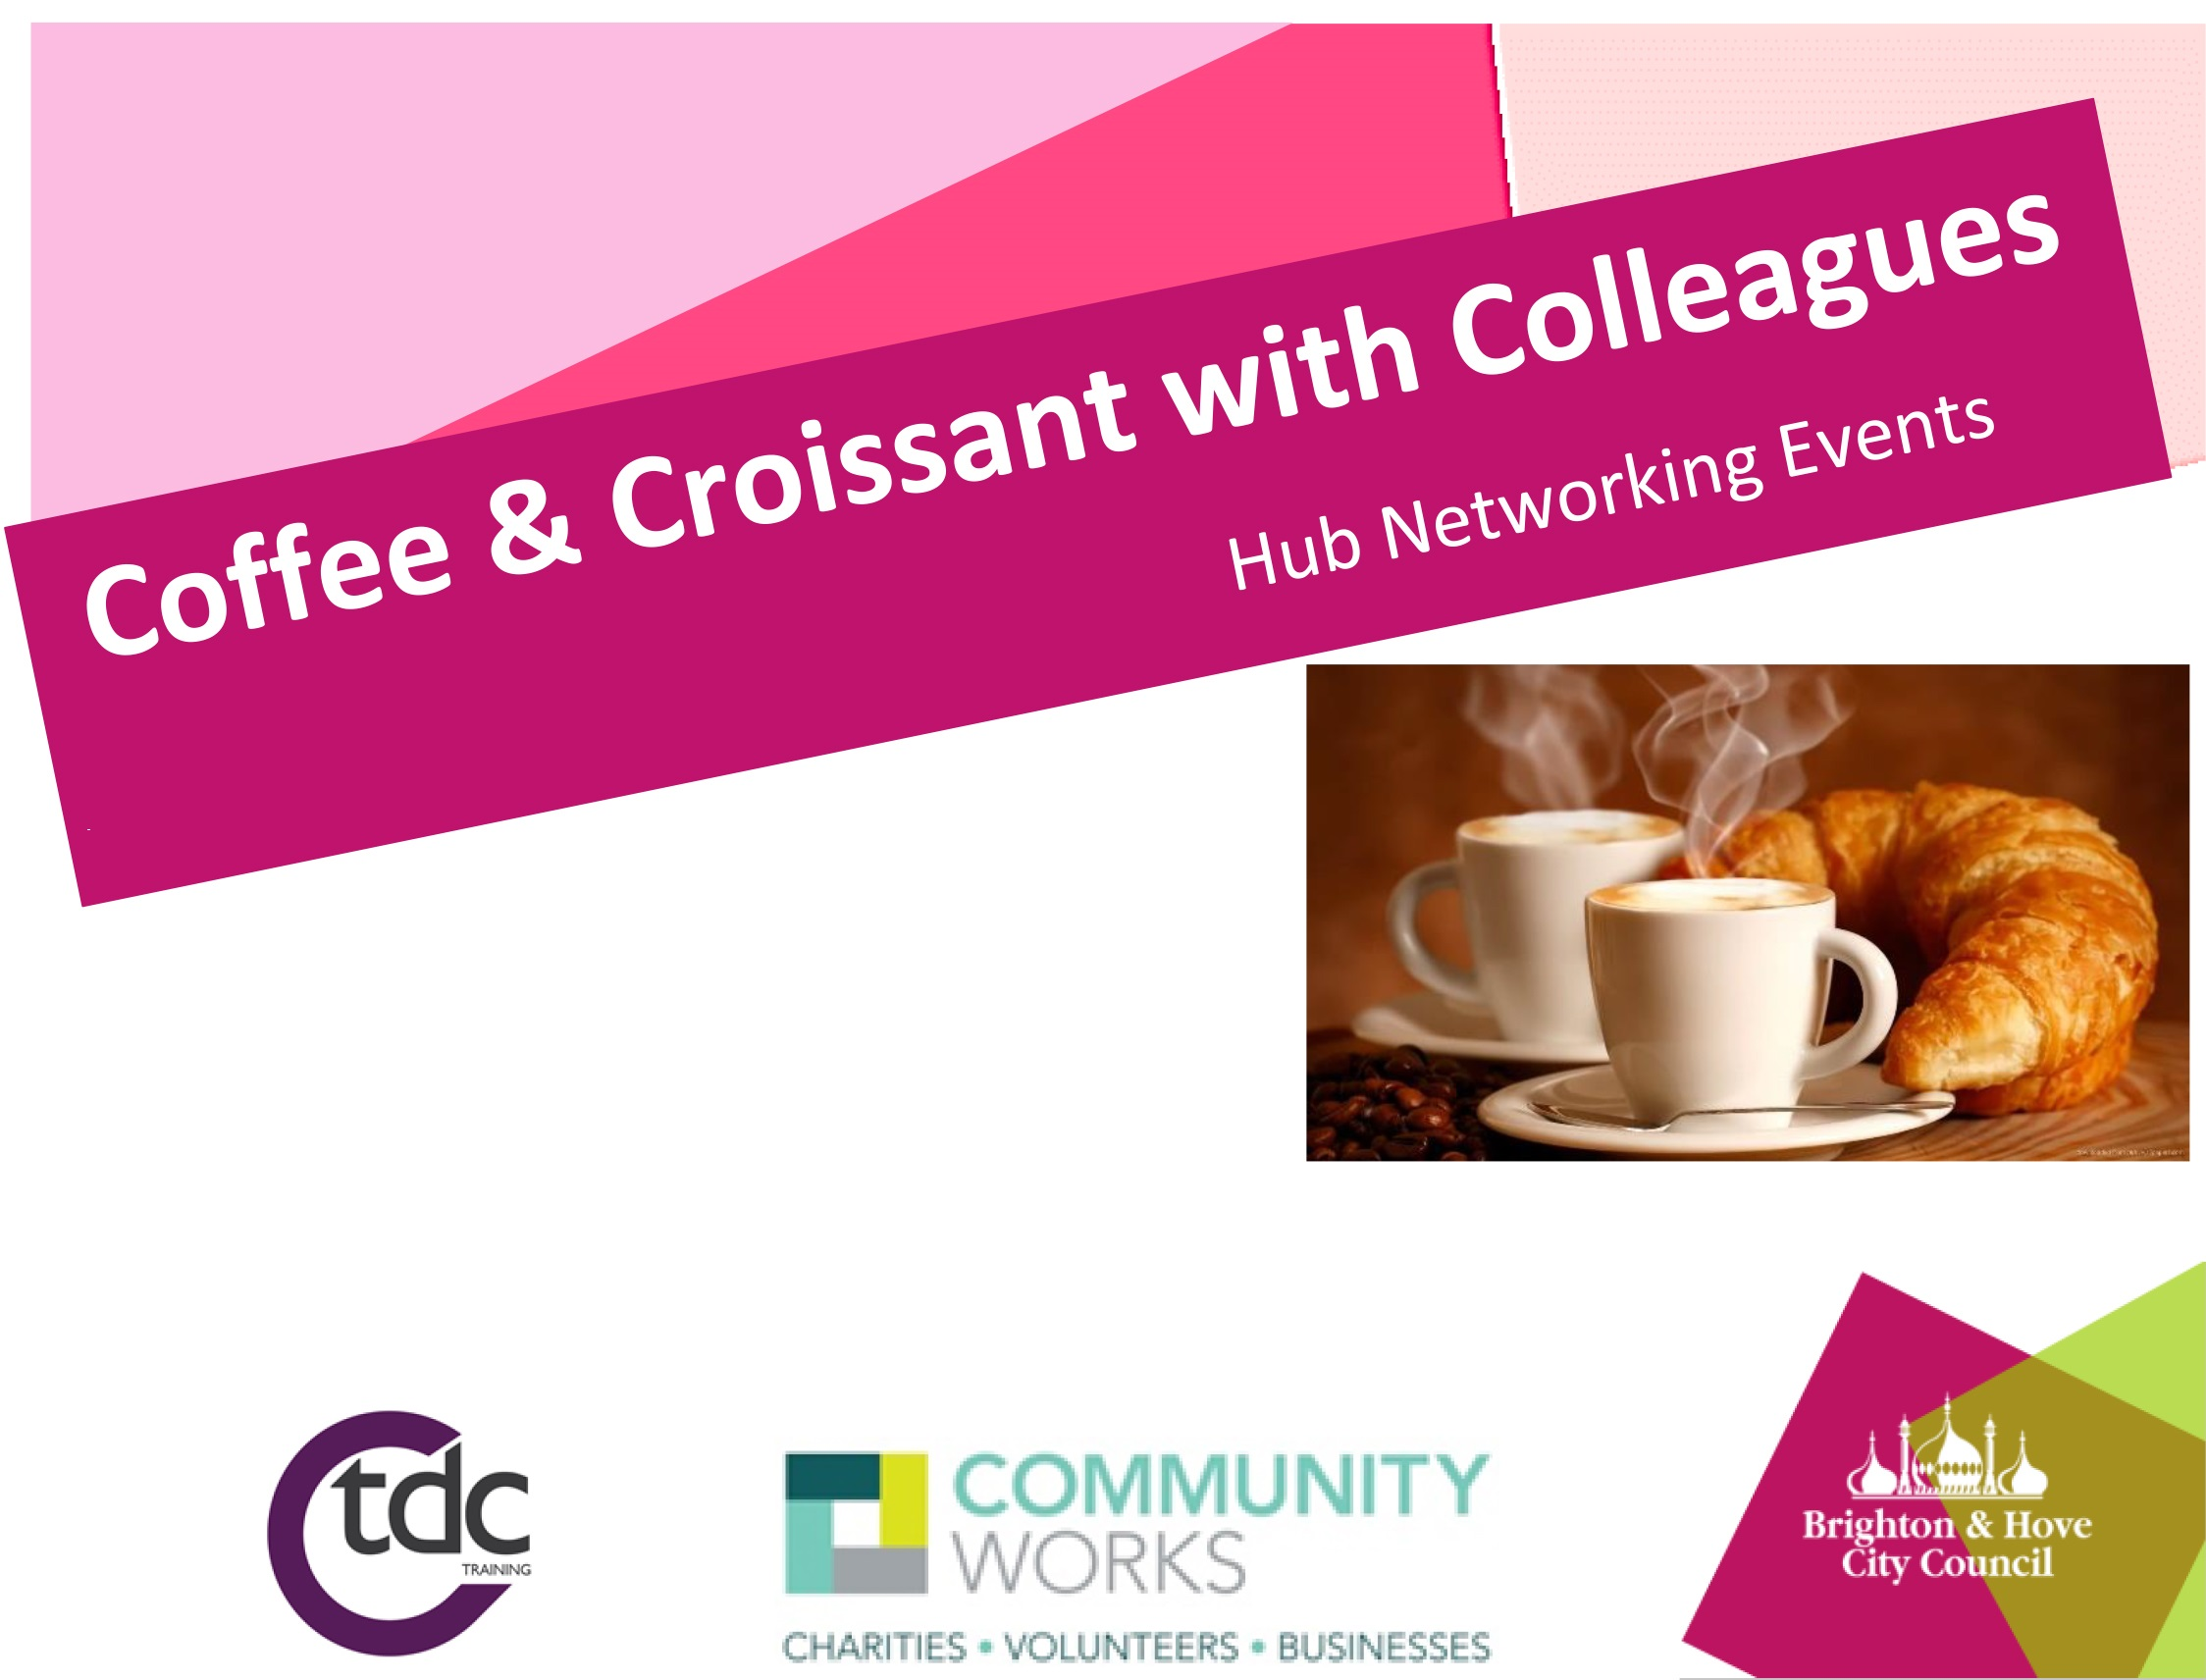 Community Development Brighton Networking events